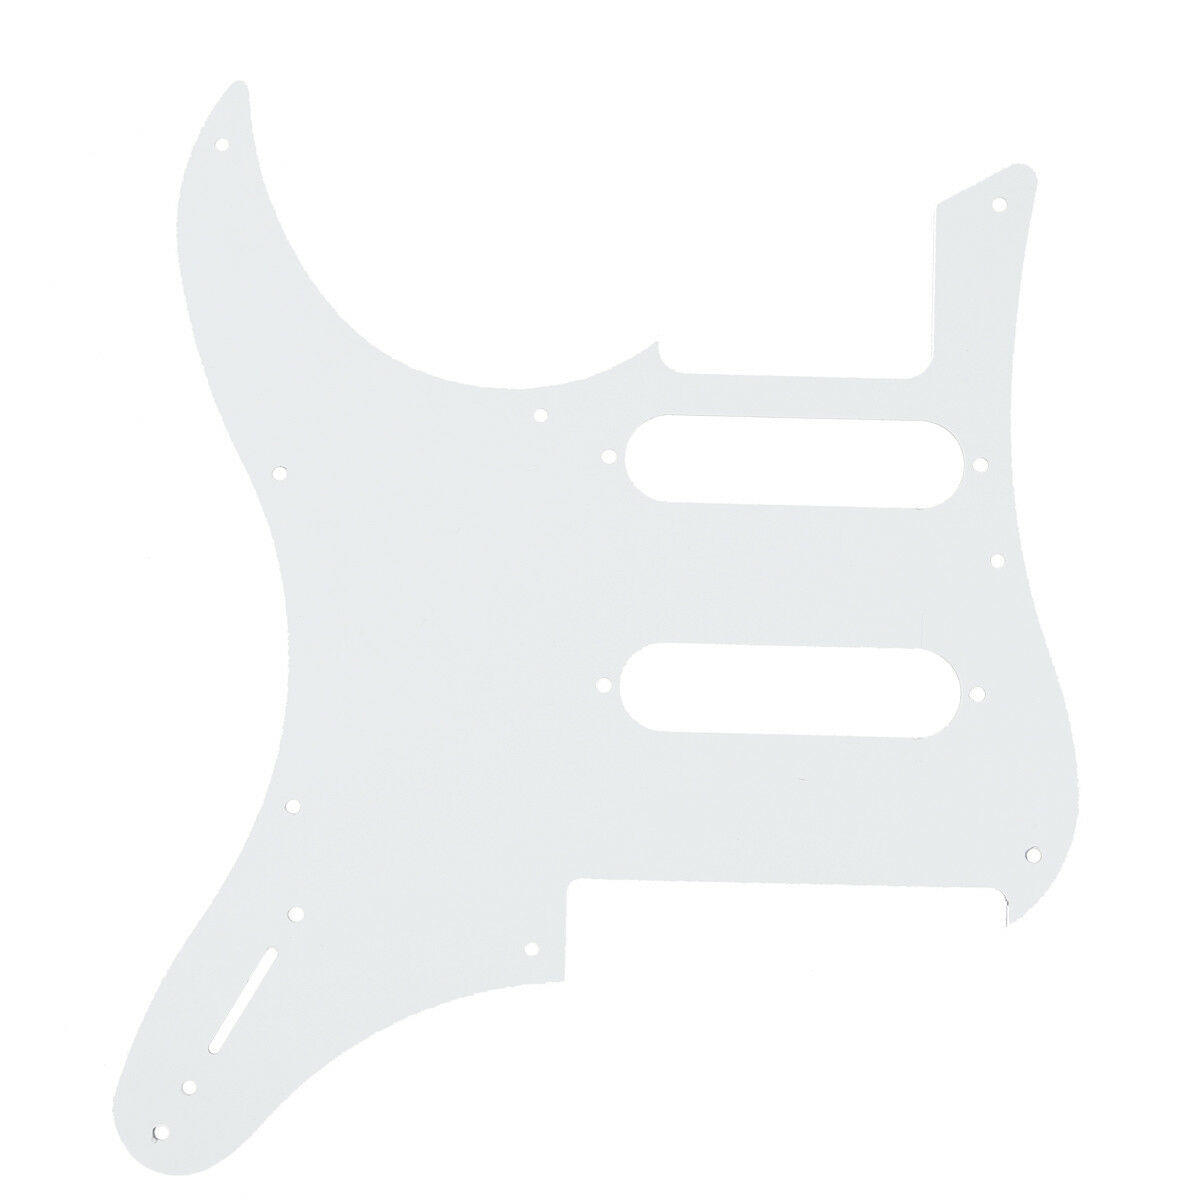 yamaha pacifica 112v wiring diagram stihl ms 270 parts electric guitar pickguard scratch plate for